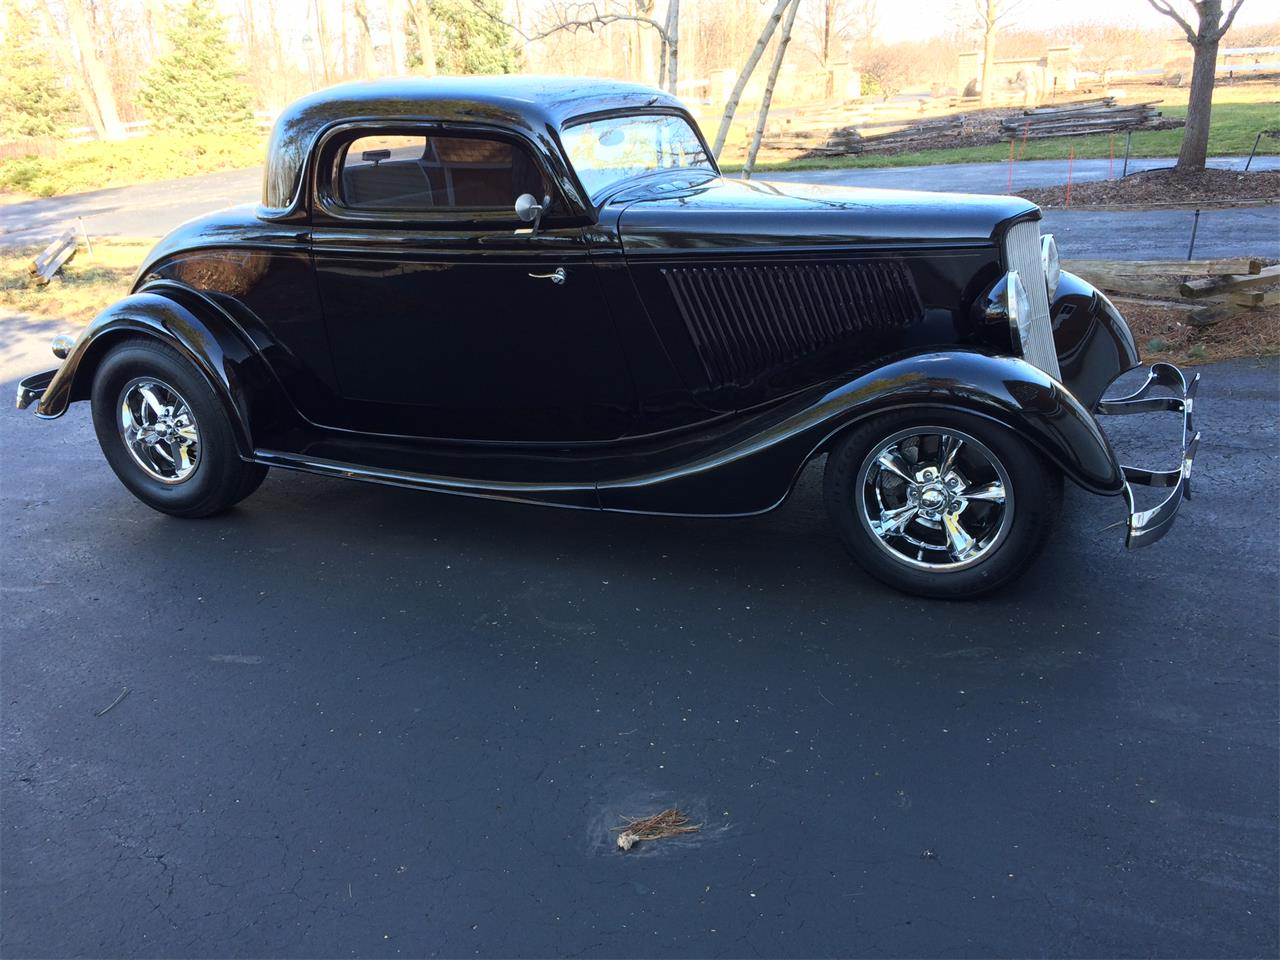 Large Picture of Classic 1934 Ford 3-Window Coupe - $42,000.00 Offered by a Private Seller - MQJO